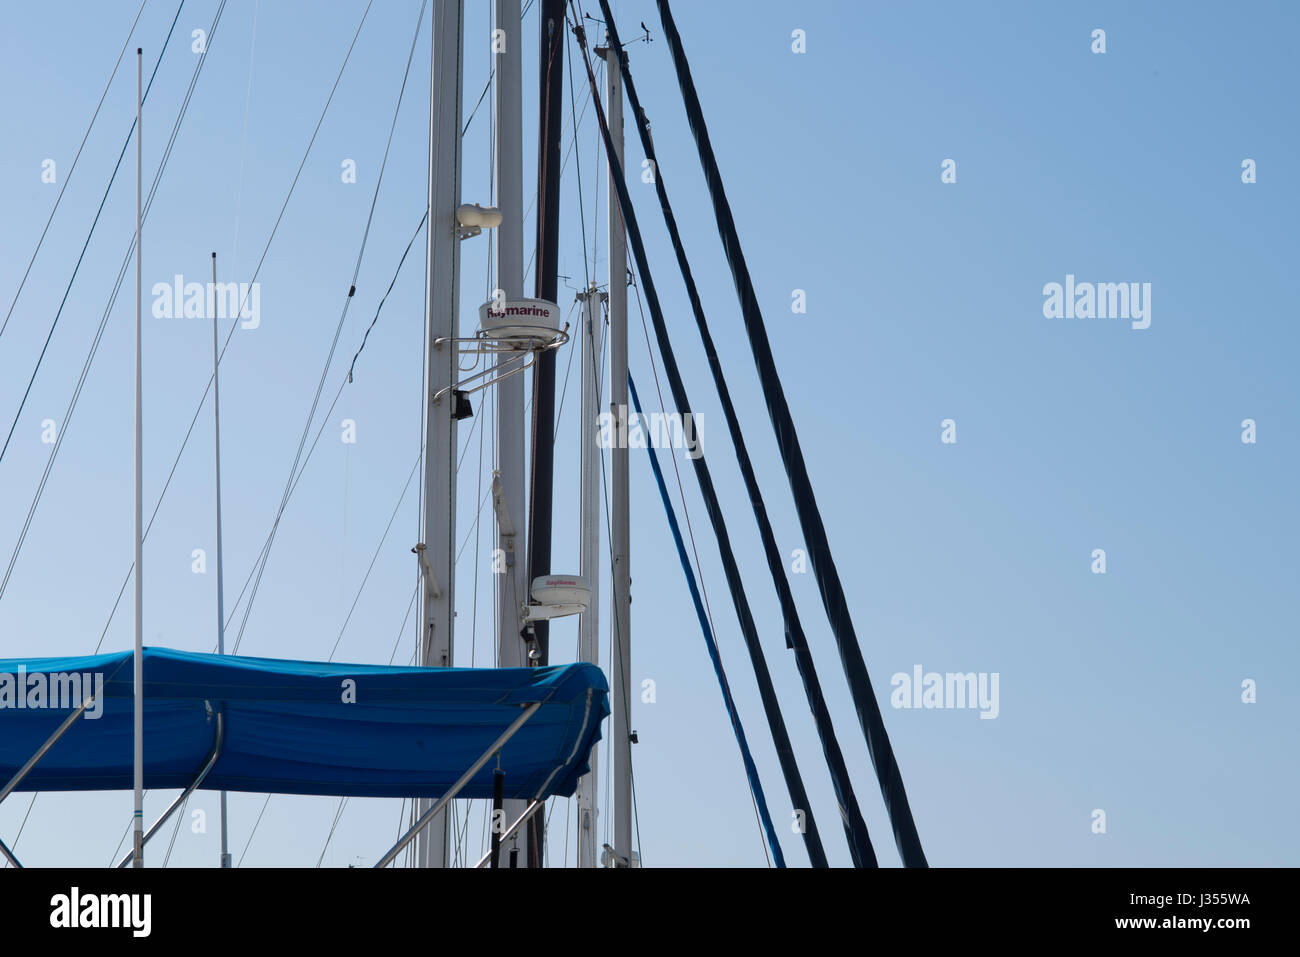 The masts of parked sailboats make patterns against the sky. - Stock Image